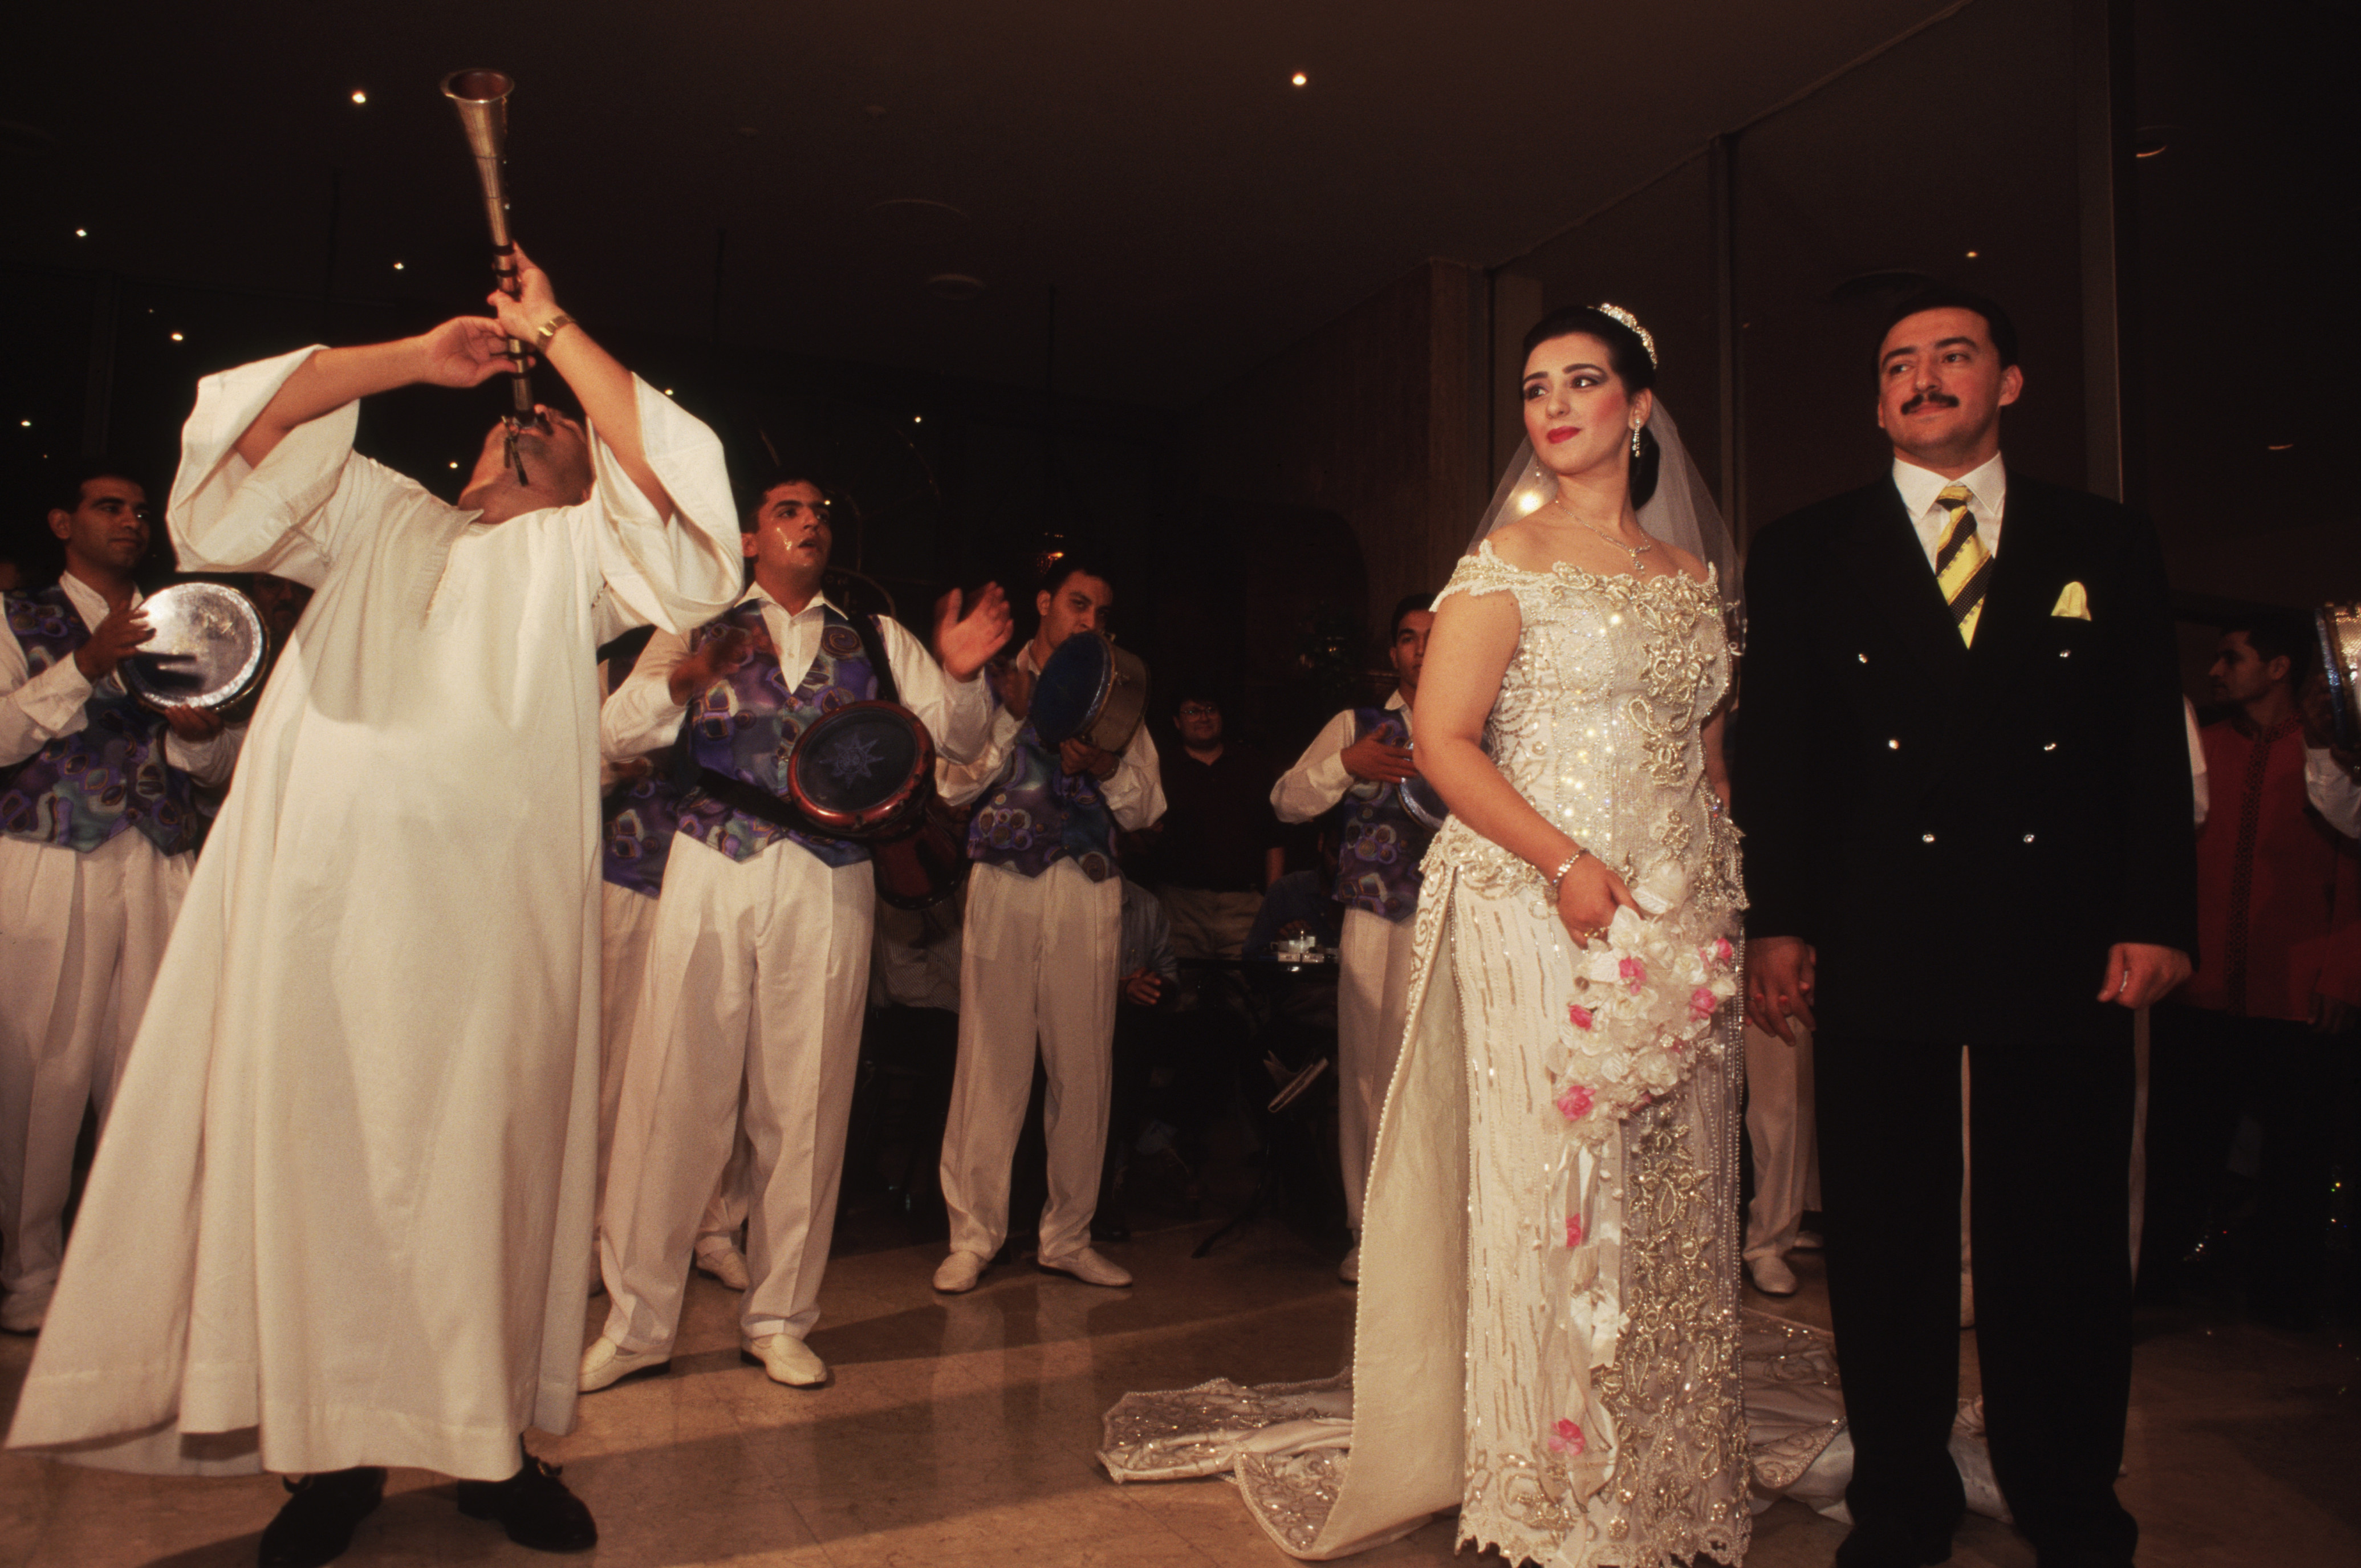 The Middle East S Fight For Civil Marriage The Boston Globe